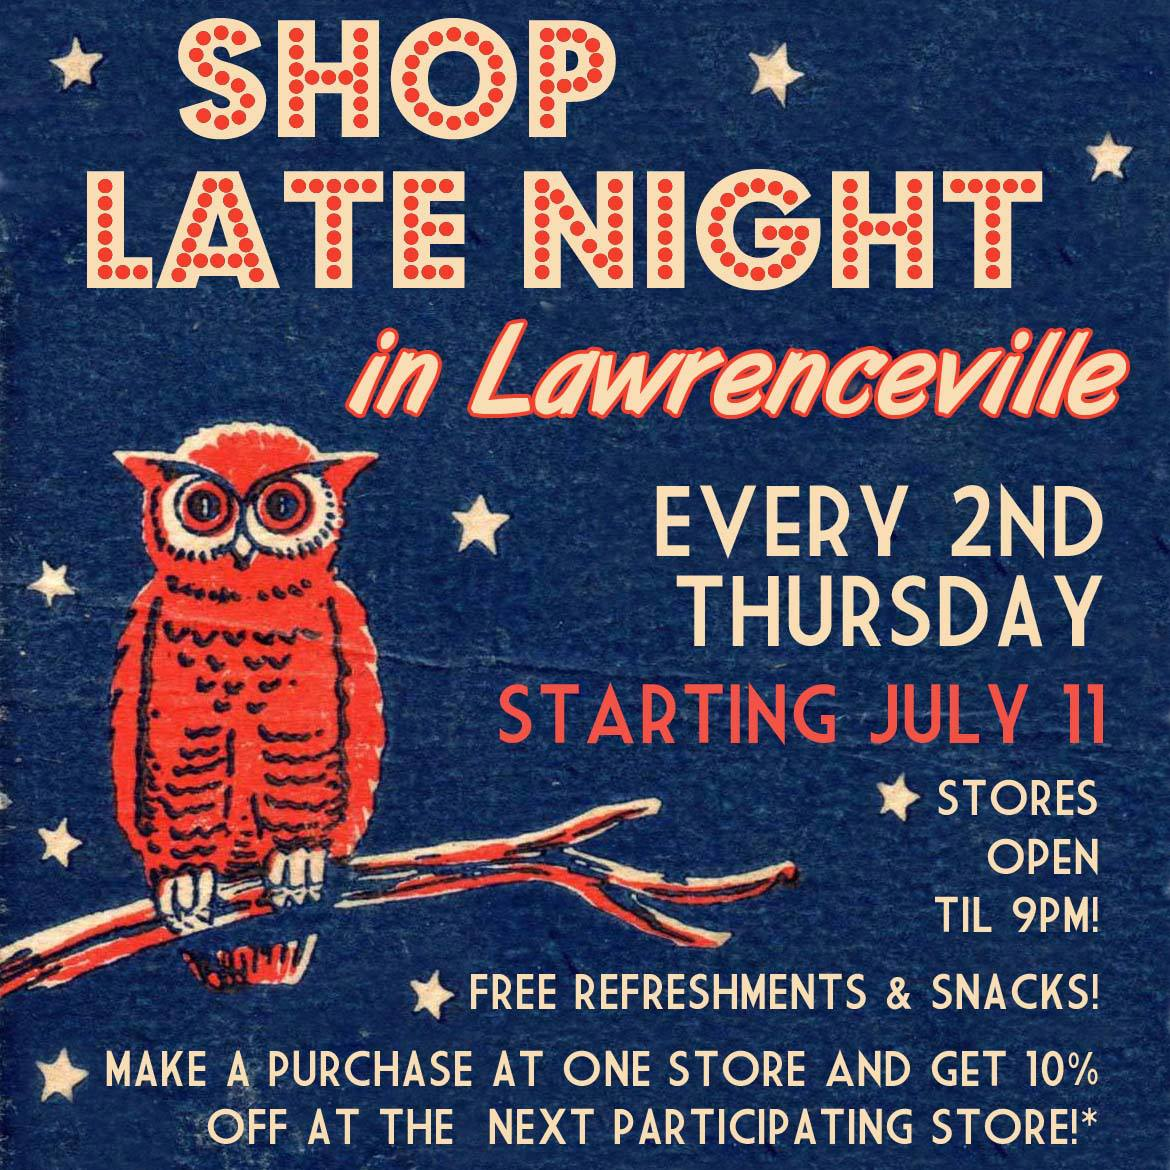 Shop Late Night in Lawrenceville is Tonight!